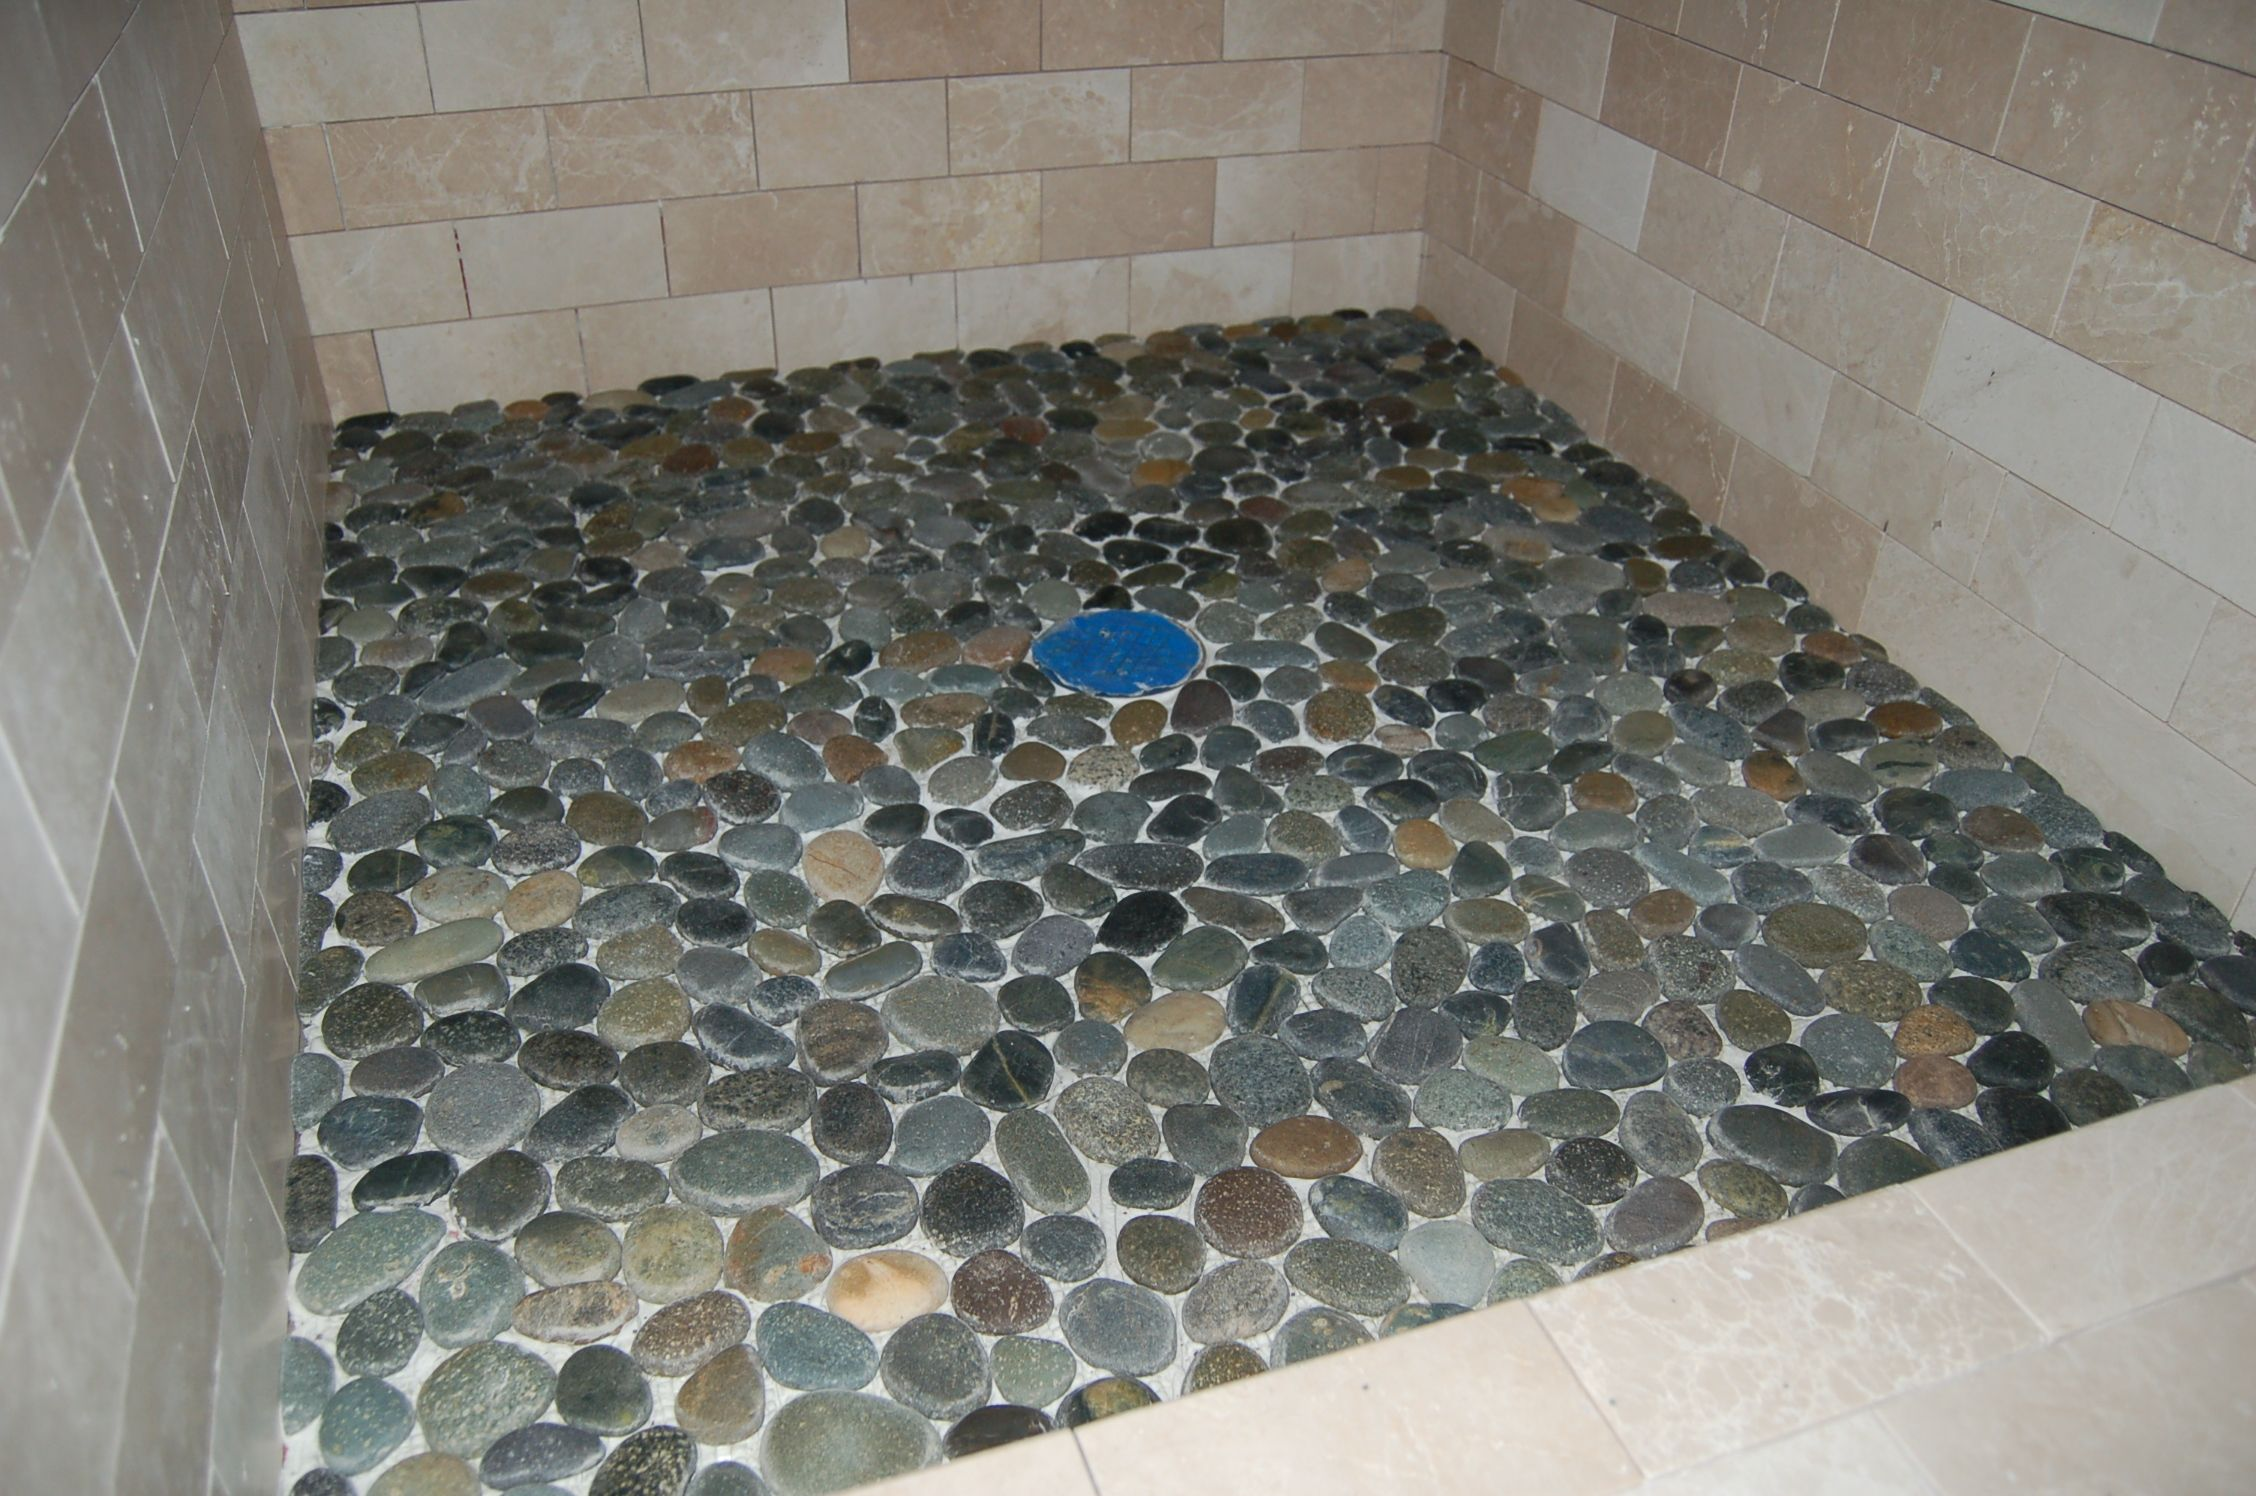 Tile And Trim Shower Floor Pebble Shower Floor Pebble Tile Shower Floor